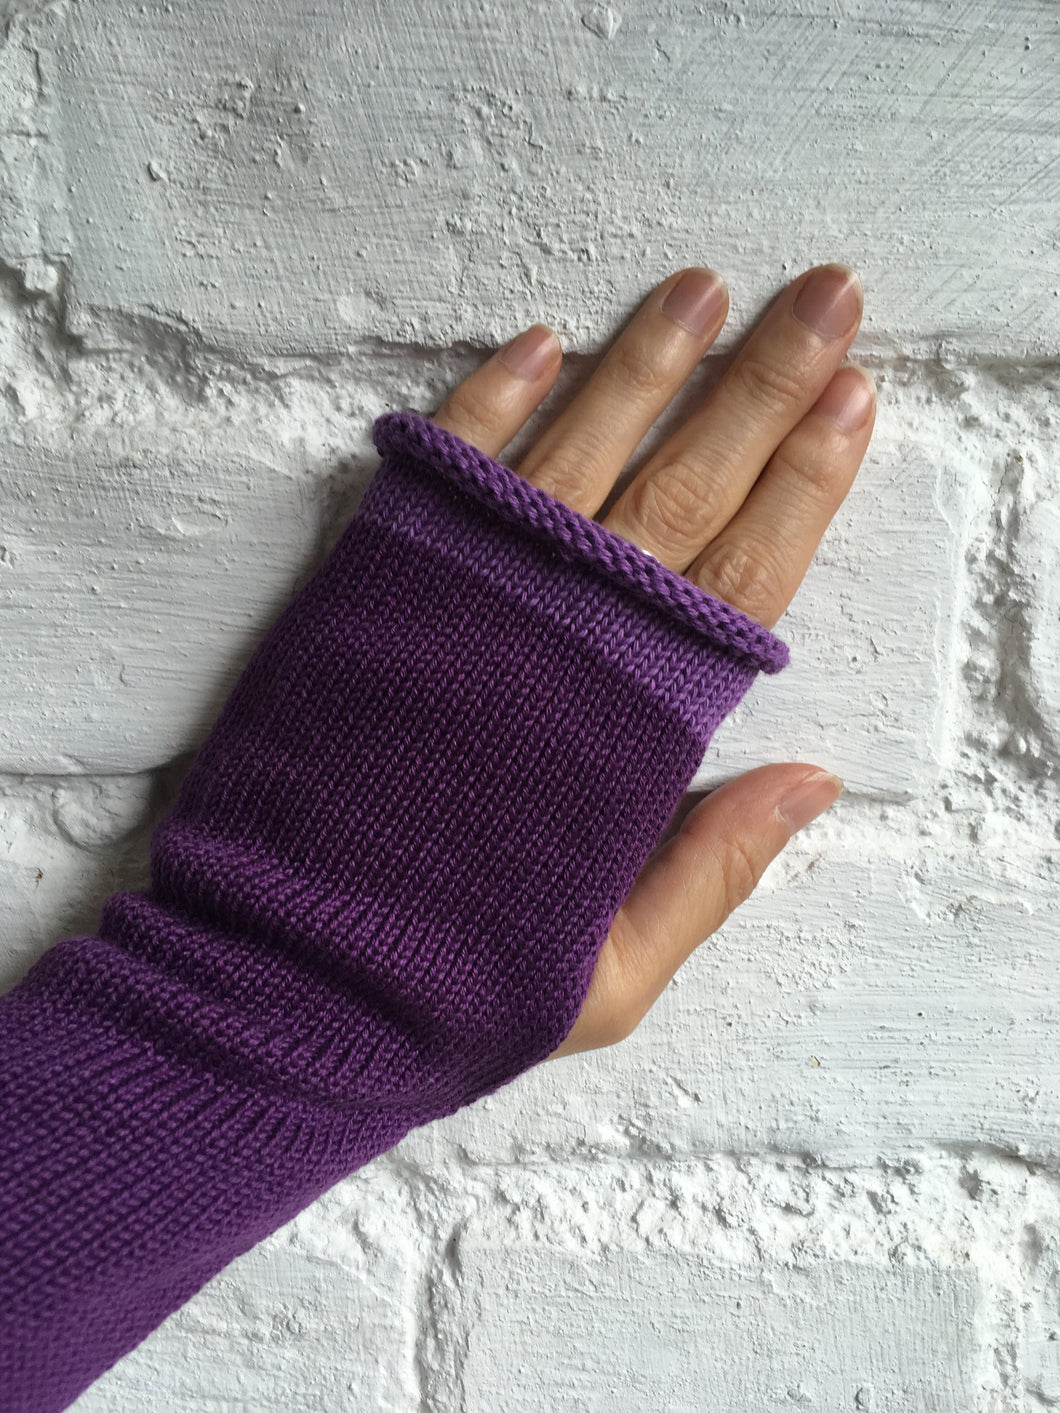 Lord and Taft Violet Purple Cotton Knitted Wrist Warmers with Slit for Thumb